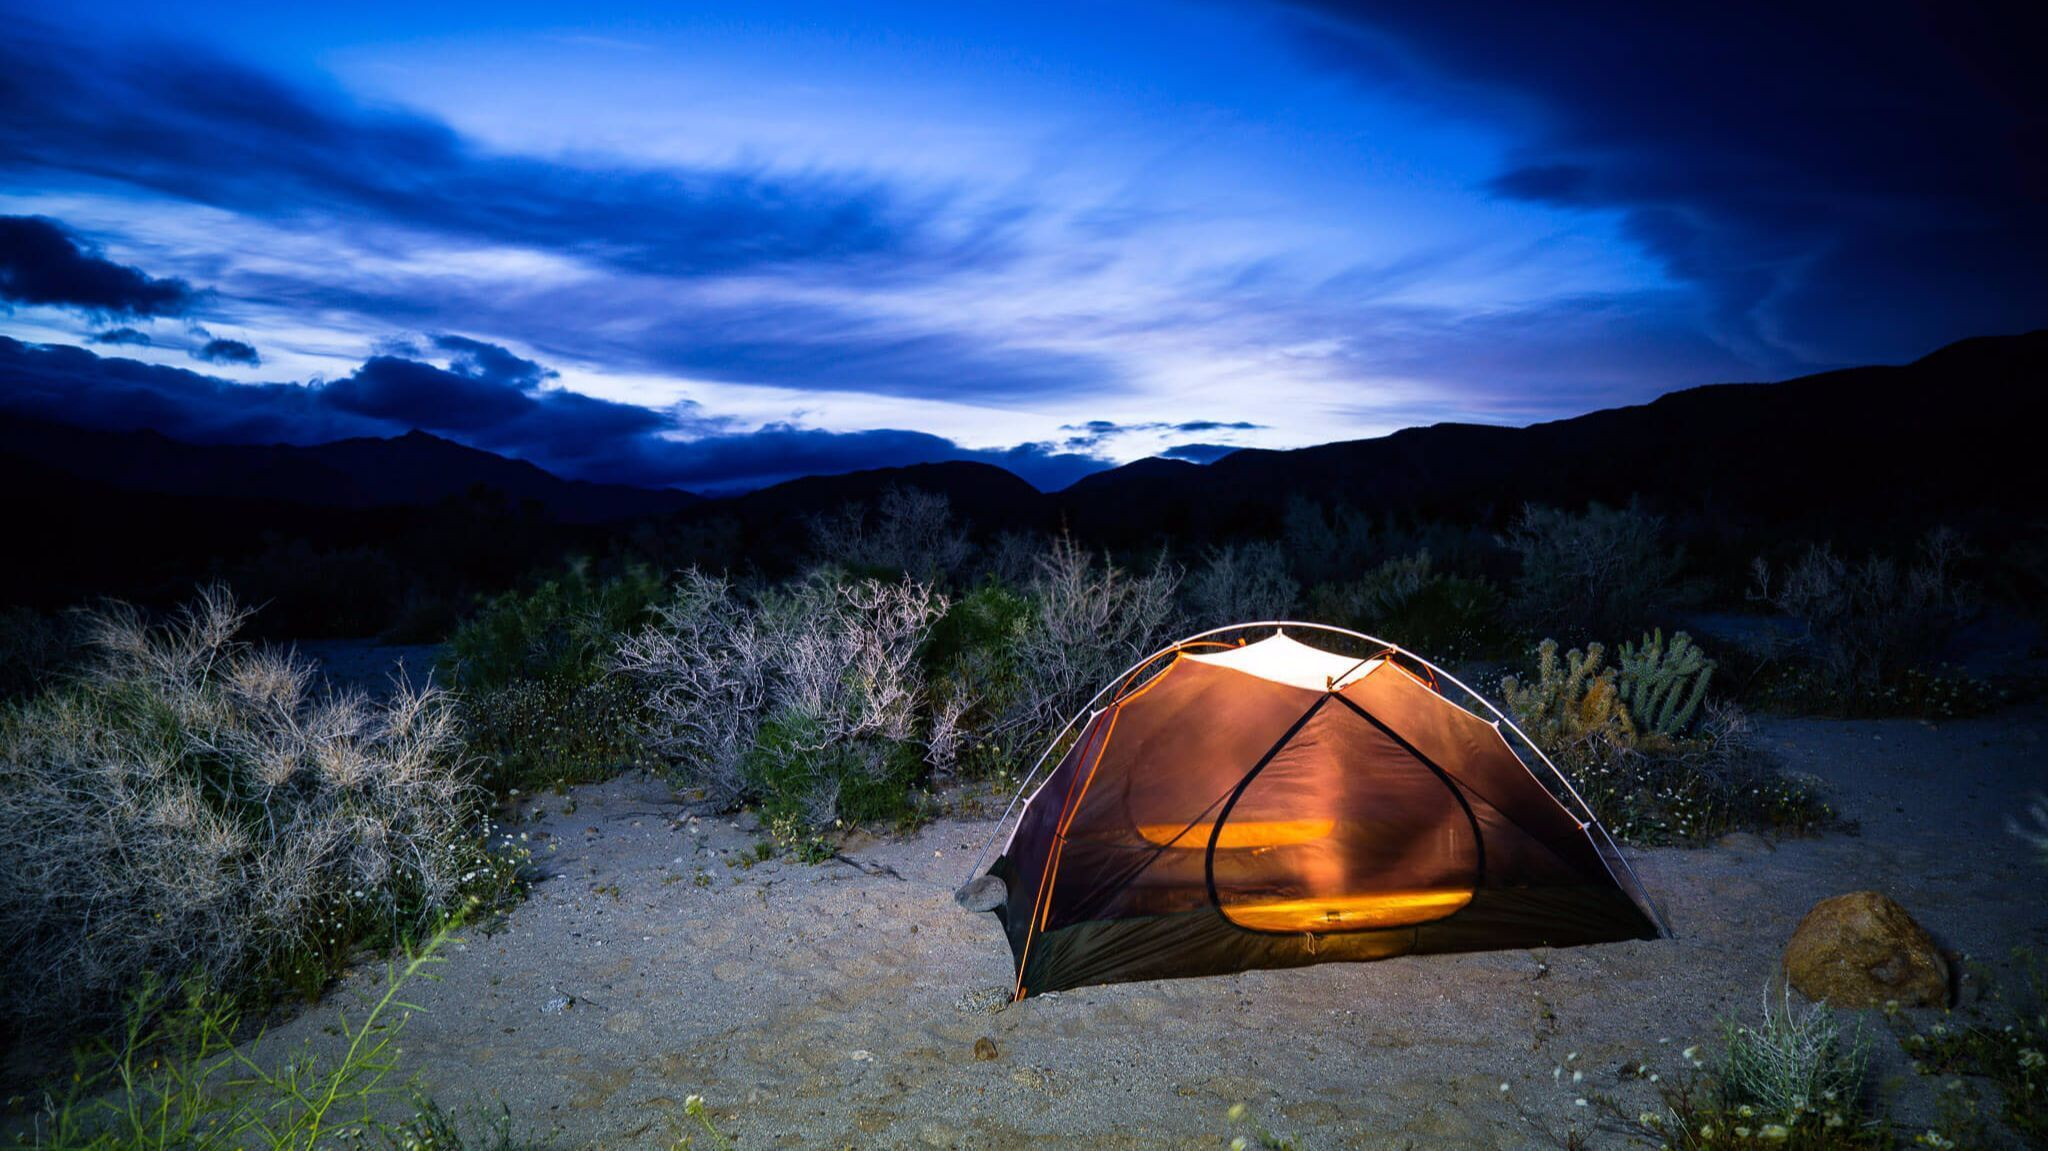 There S A New Go To Website To Reserve Campsites And Tours